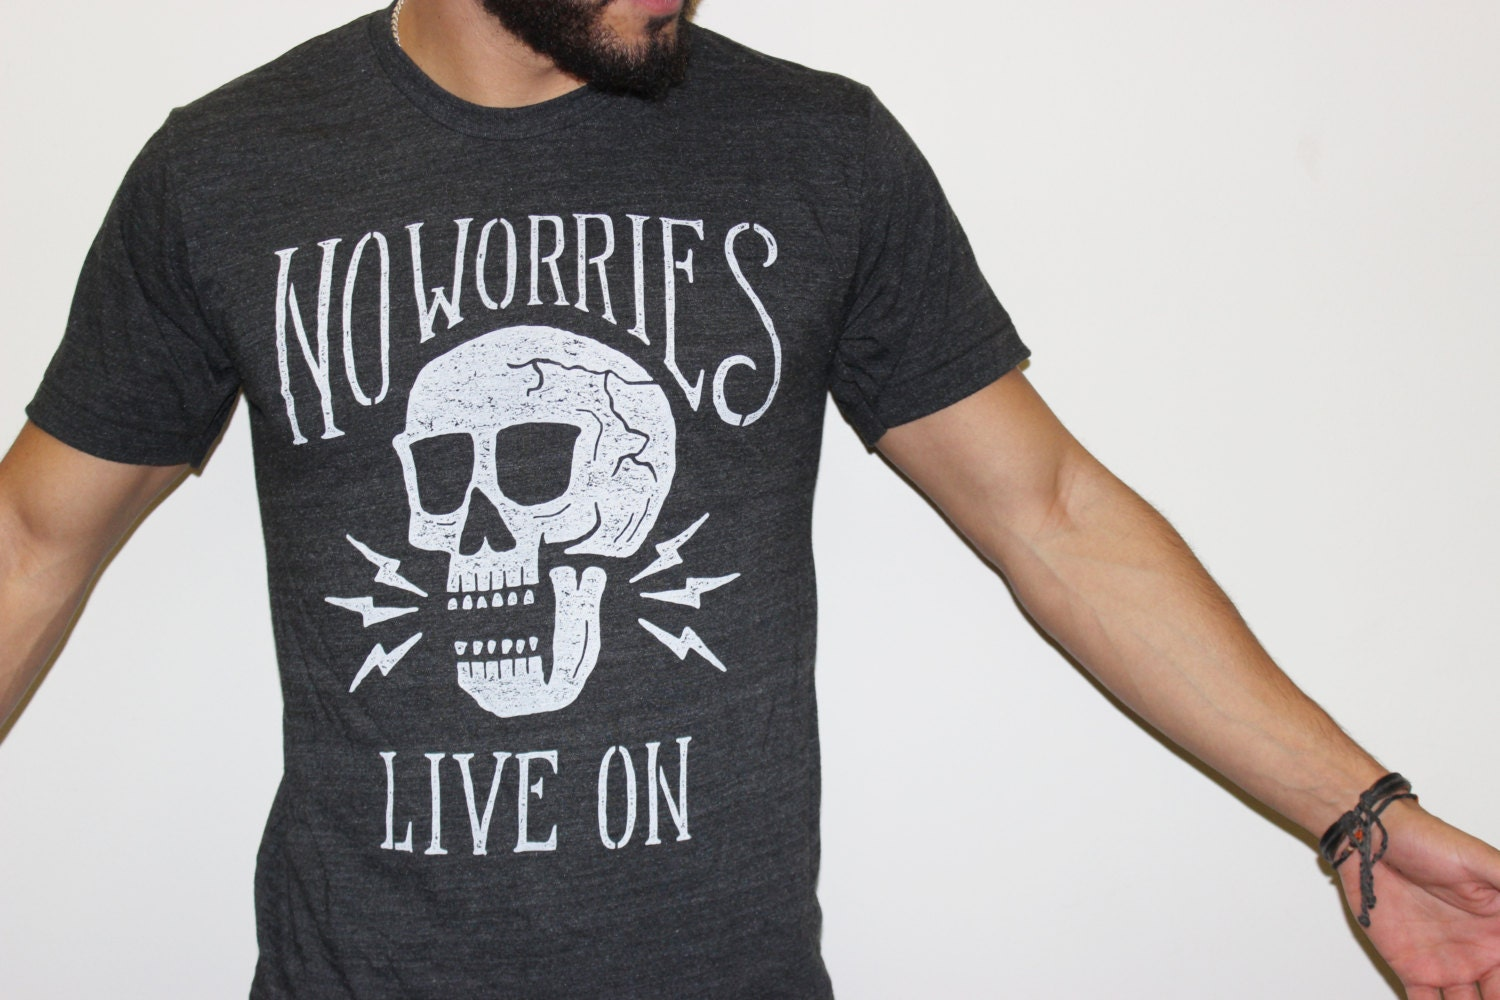 No worries live on skull vintage unisex next level Next level printed shirts